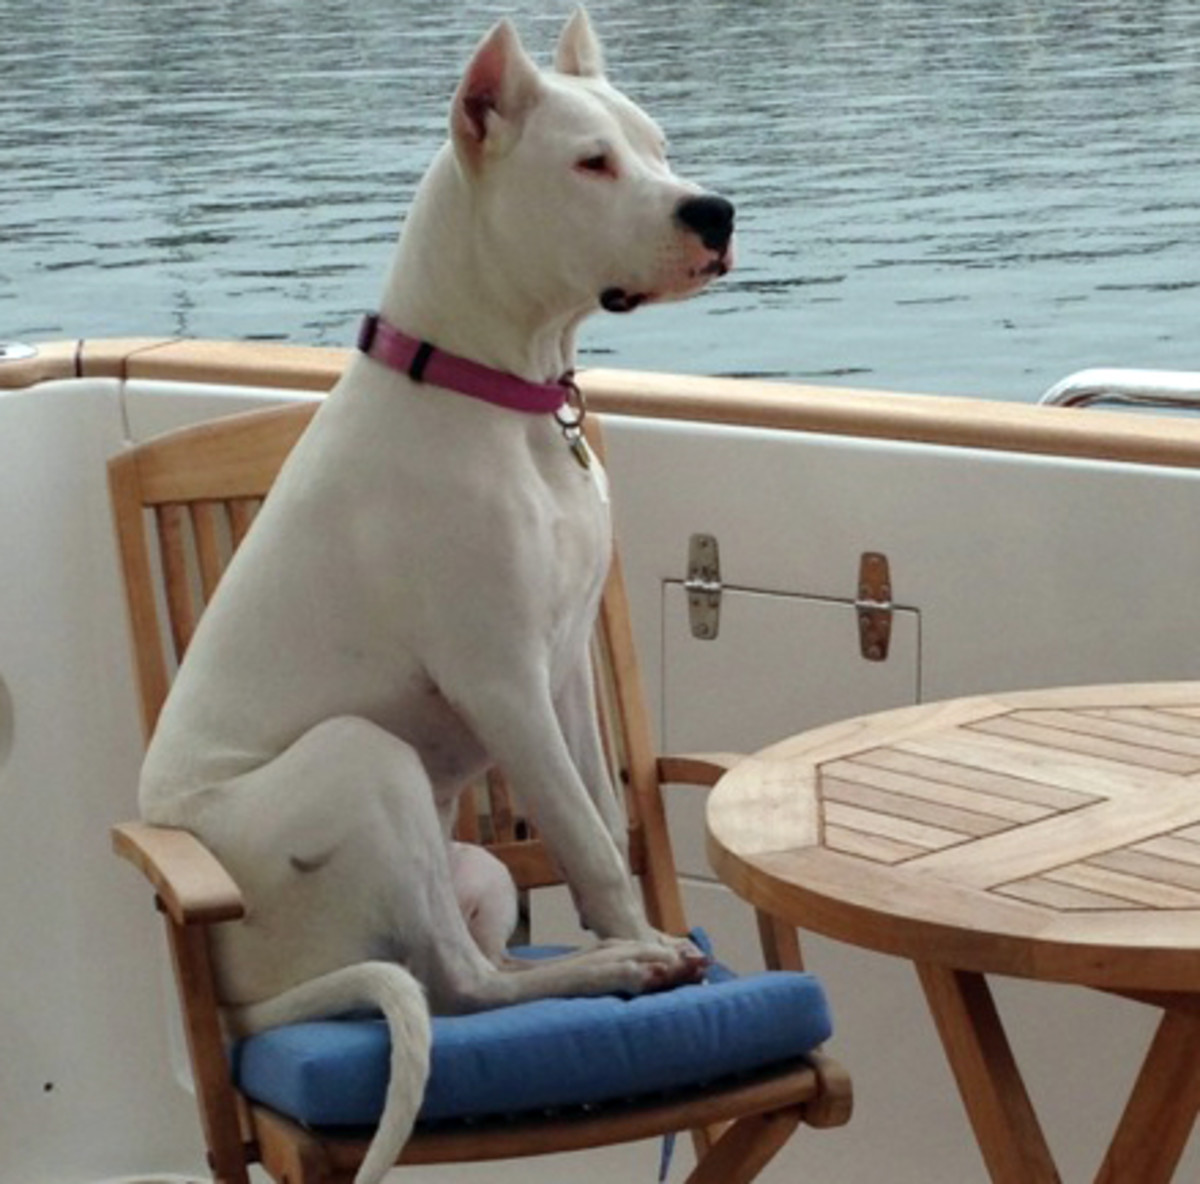 Belle is a 10-month old Dogo Argentino who is our companion aboard N6305 Ithaka, says Anne Evans.